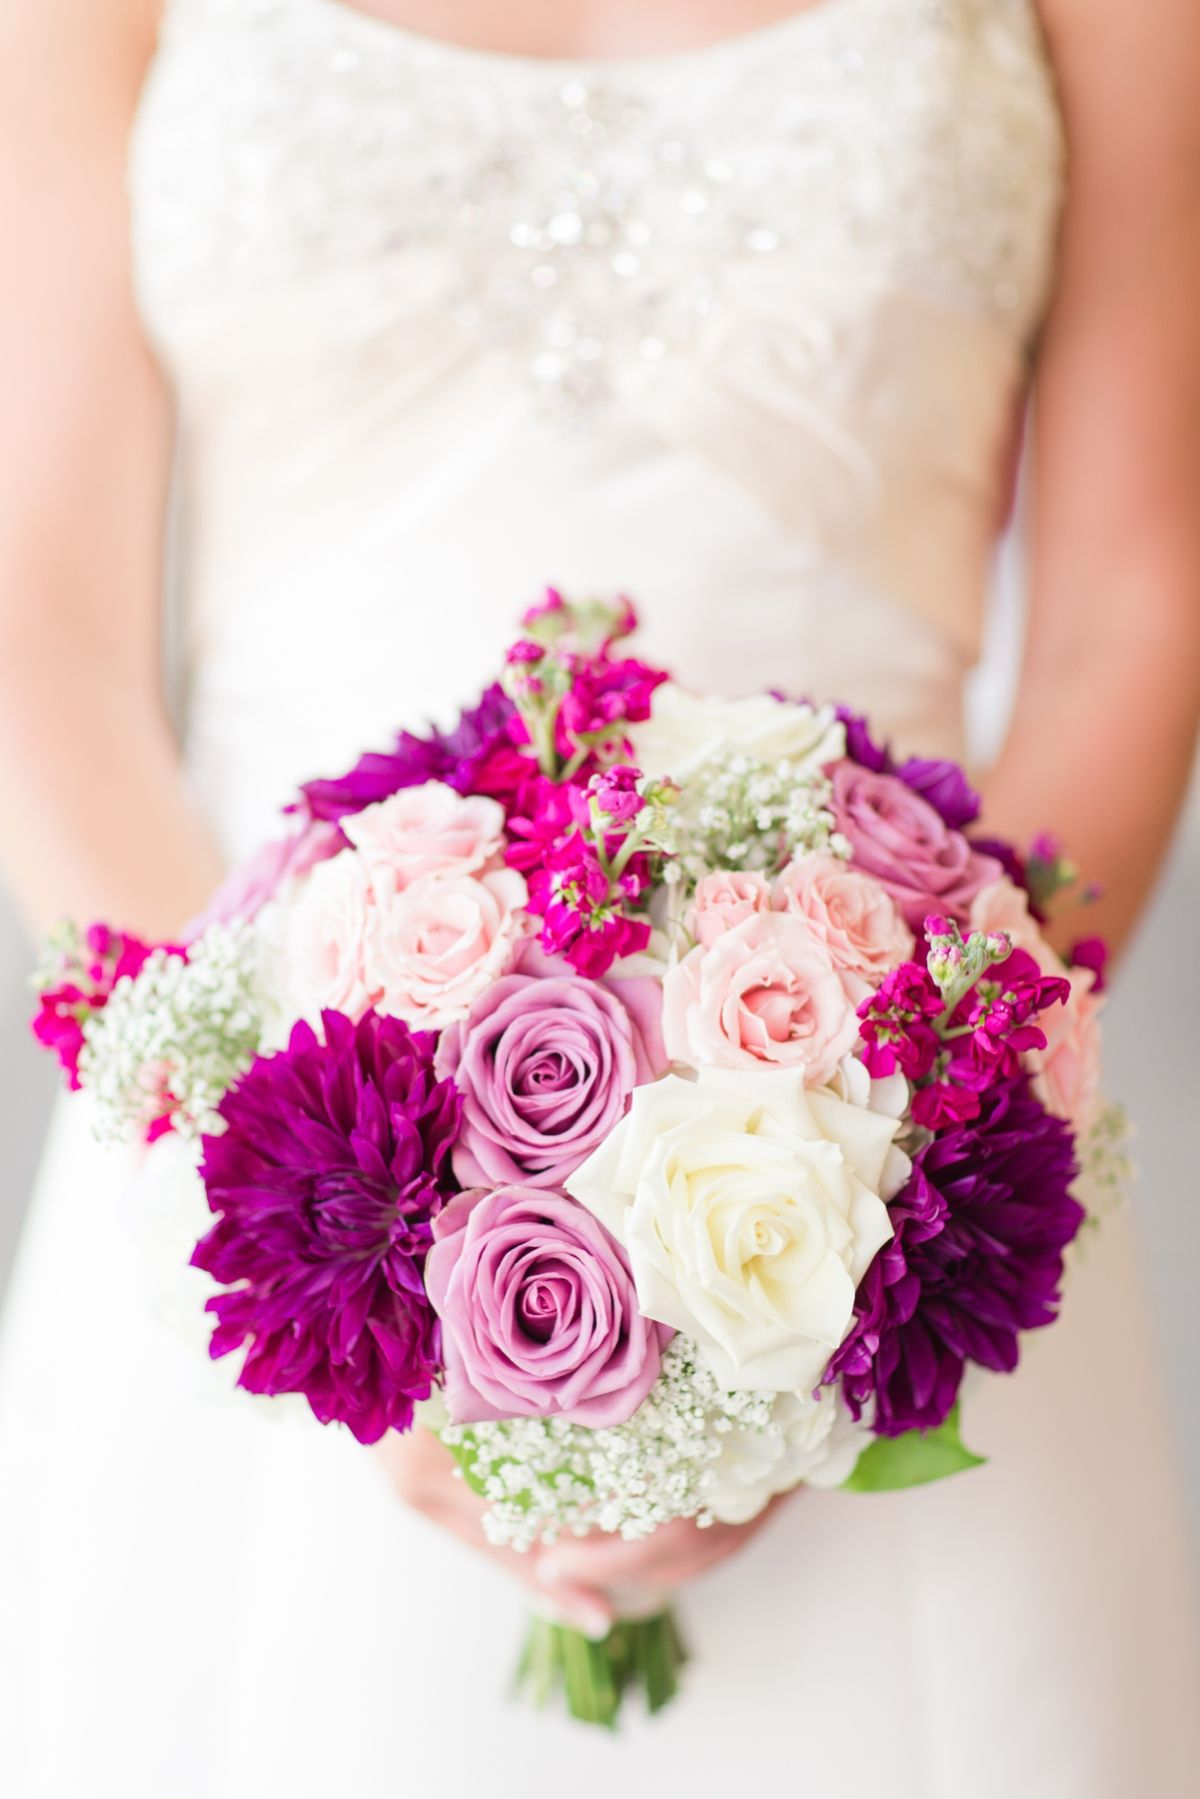 Sangria tones bridal bouquet with purples pinks blush flowers bridal bouquet with purples pinks blush flowers dhlflorist Gallery